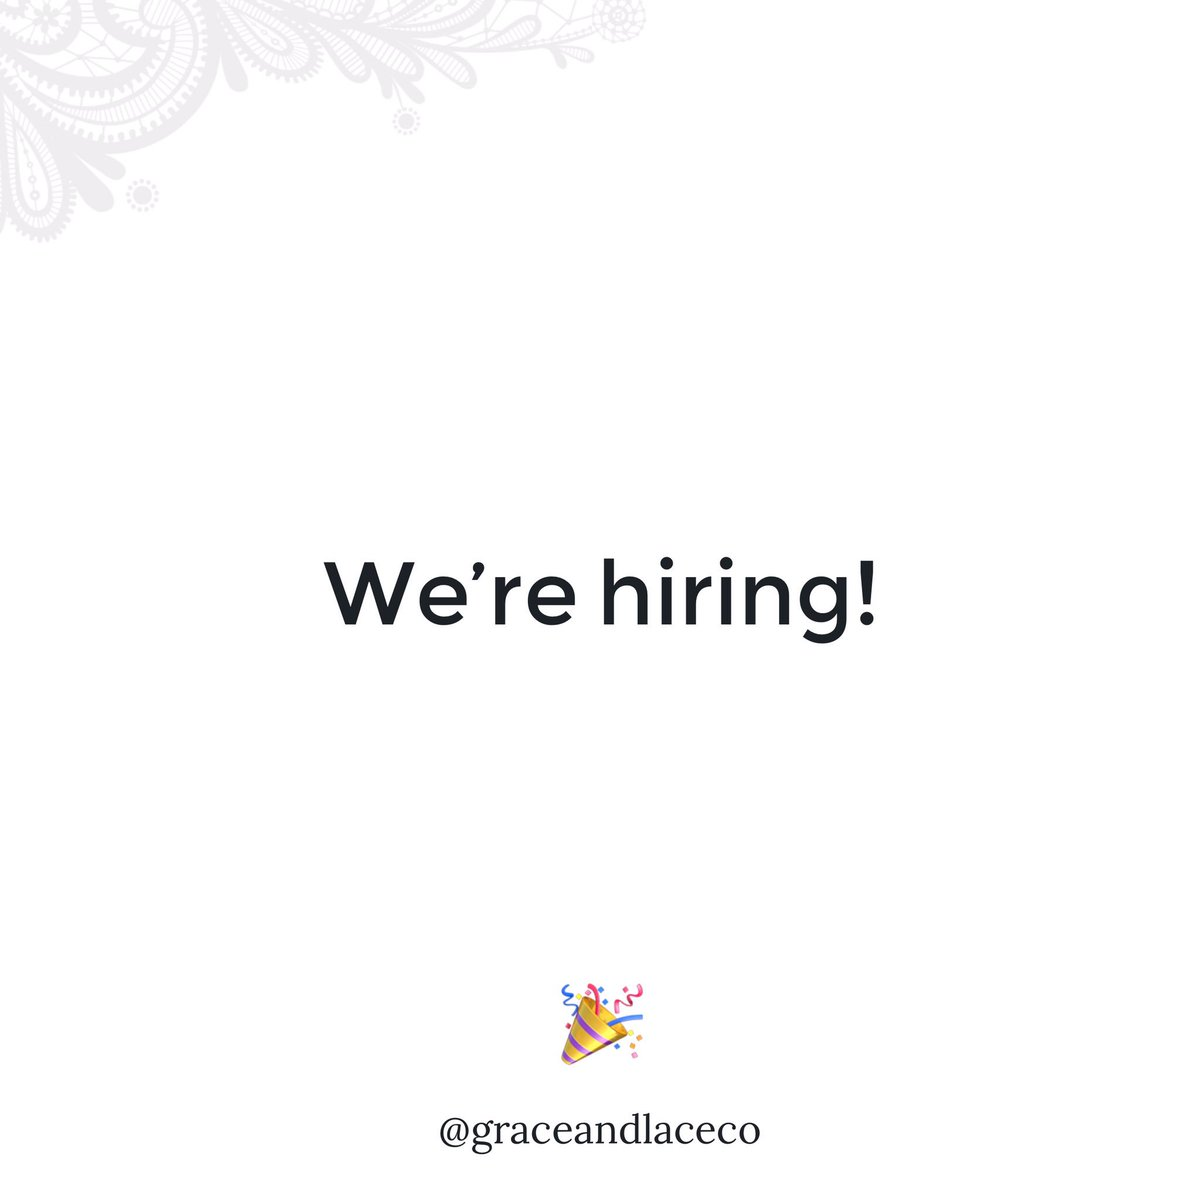 Graceandlaceco On Twitter Calling All Fashion Designers We Re Hiring A Lead Designer To Work With Melissa Https T Co Rvjctdbk6s Know Anyone Interested In Atx Https T Co Dcthntx2uo